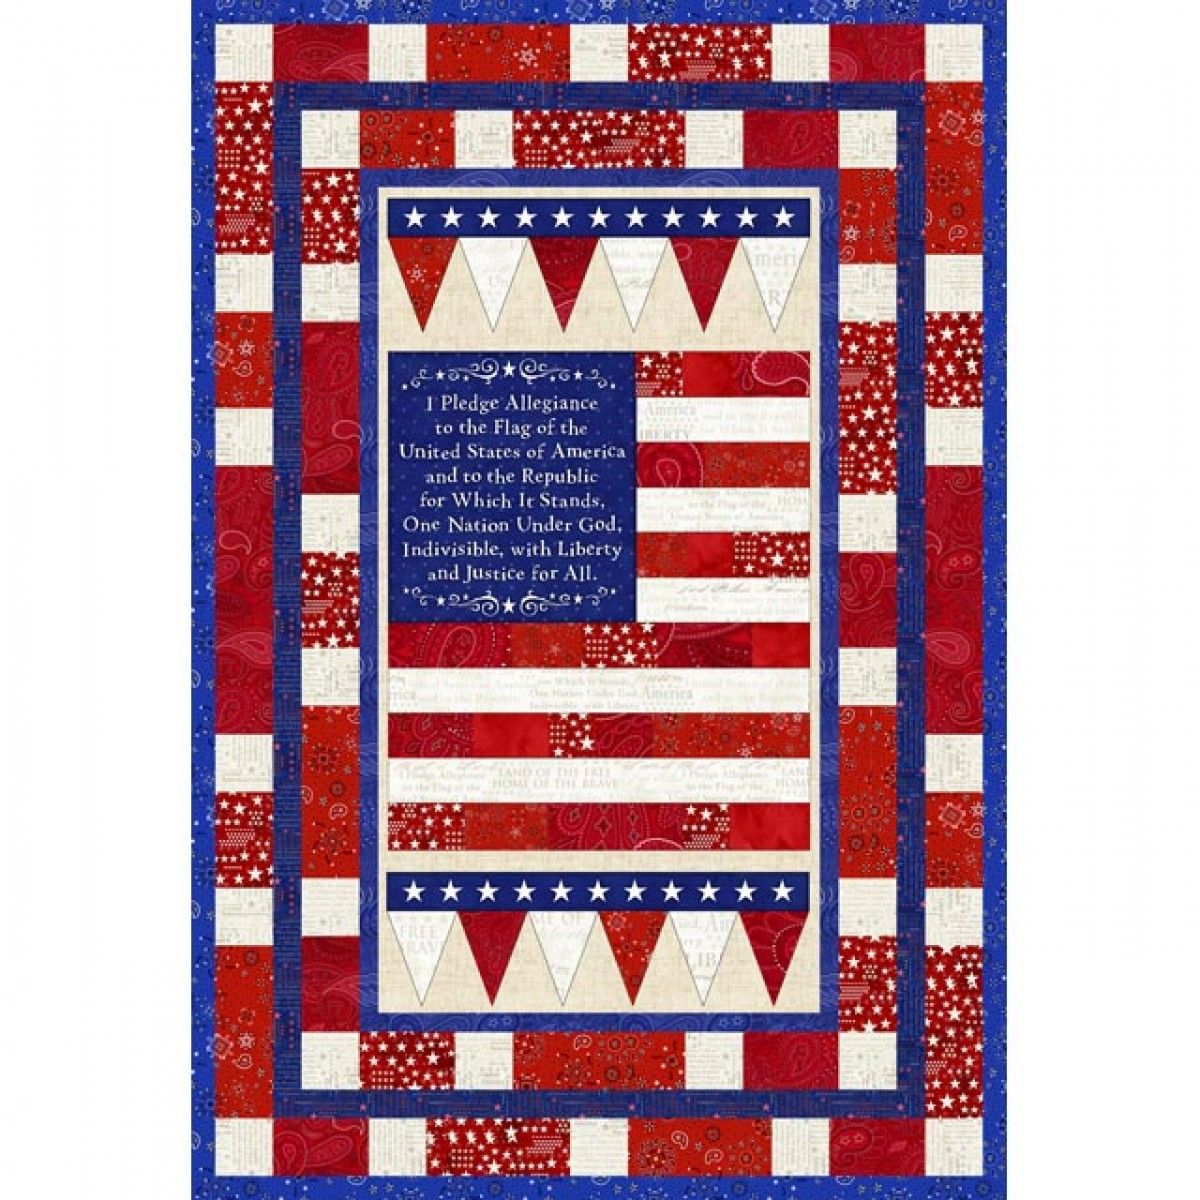 American Dreams Panel Quilt Kit from American Quilter's Society